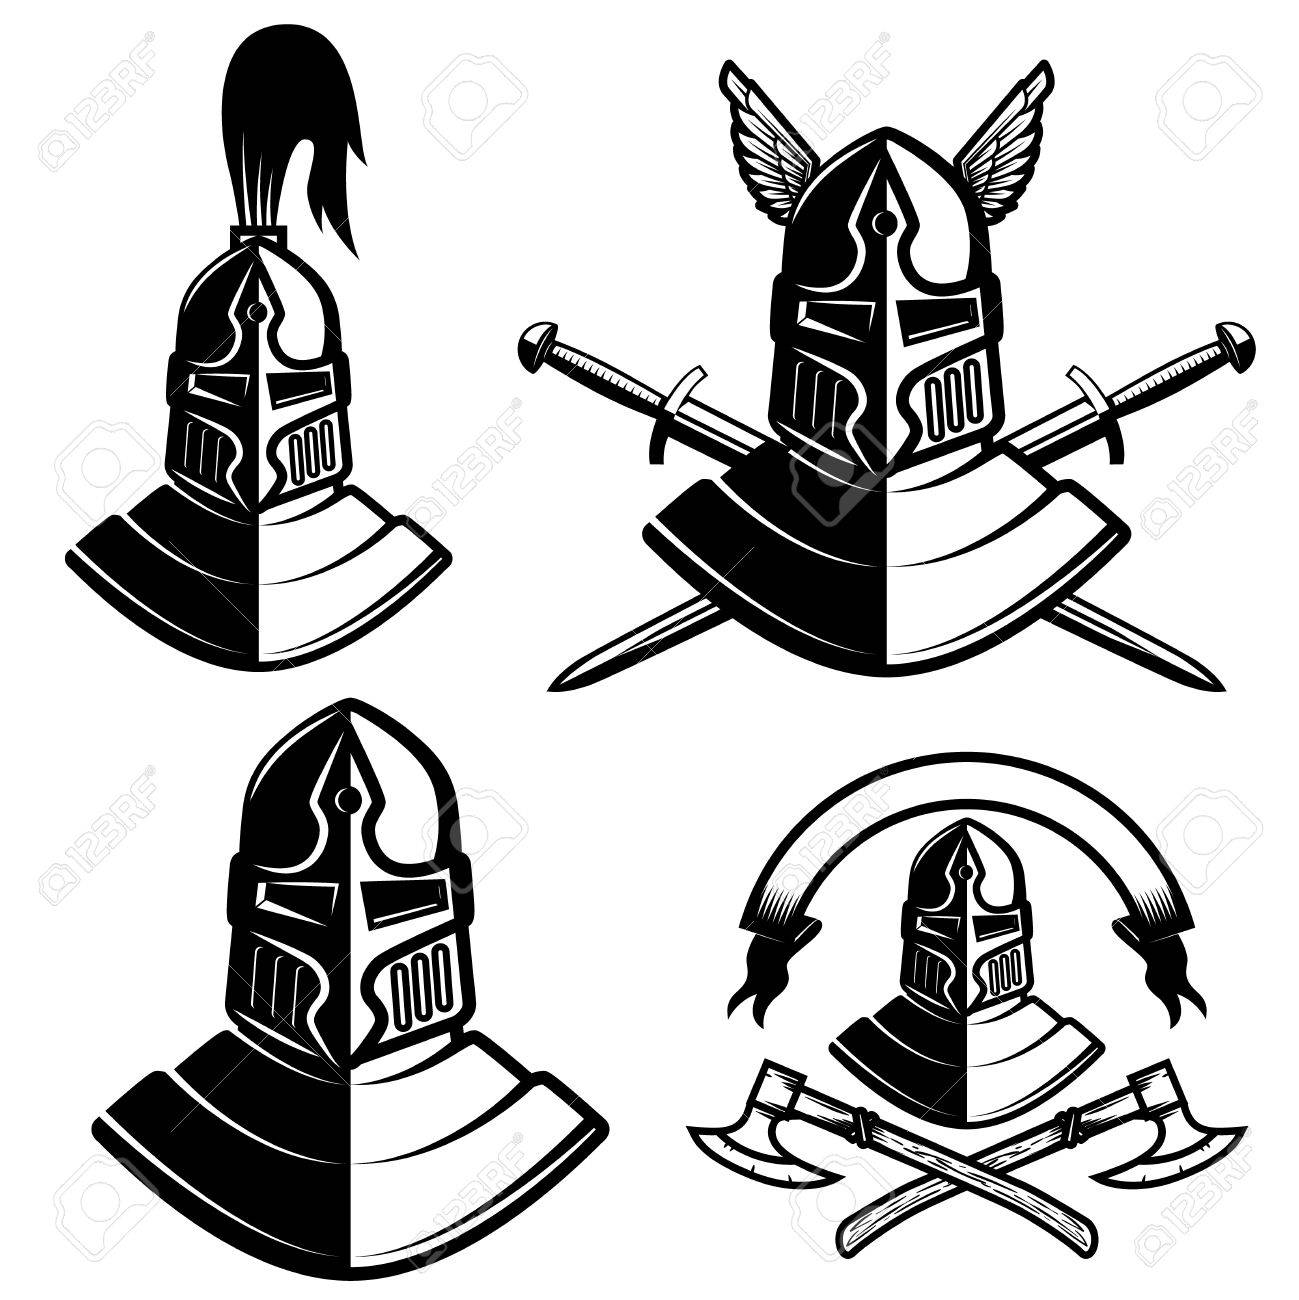 1299x1300 Set Of Knight Helmets With Swords, Axes. Design Elements